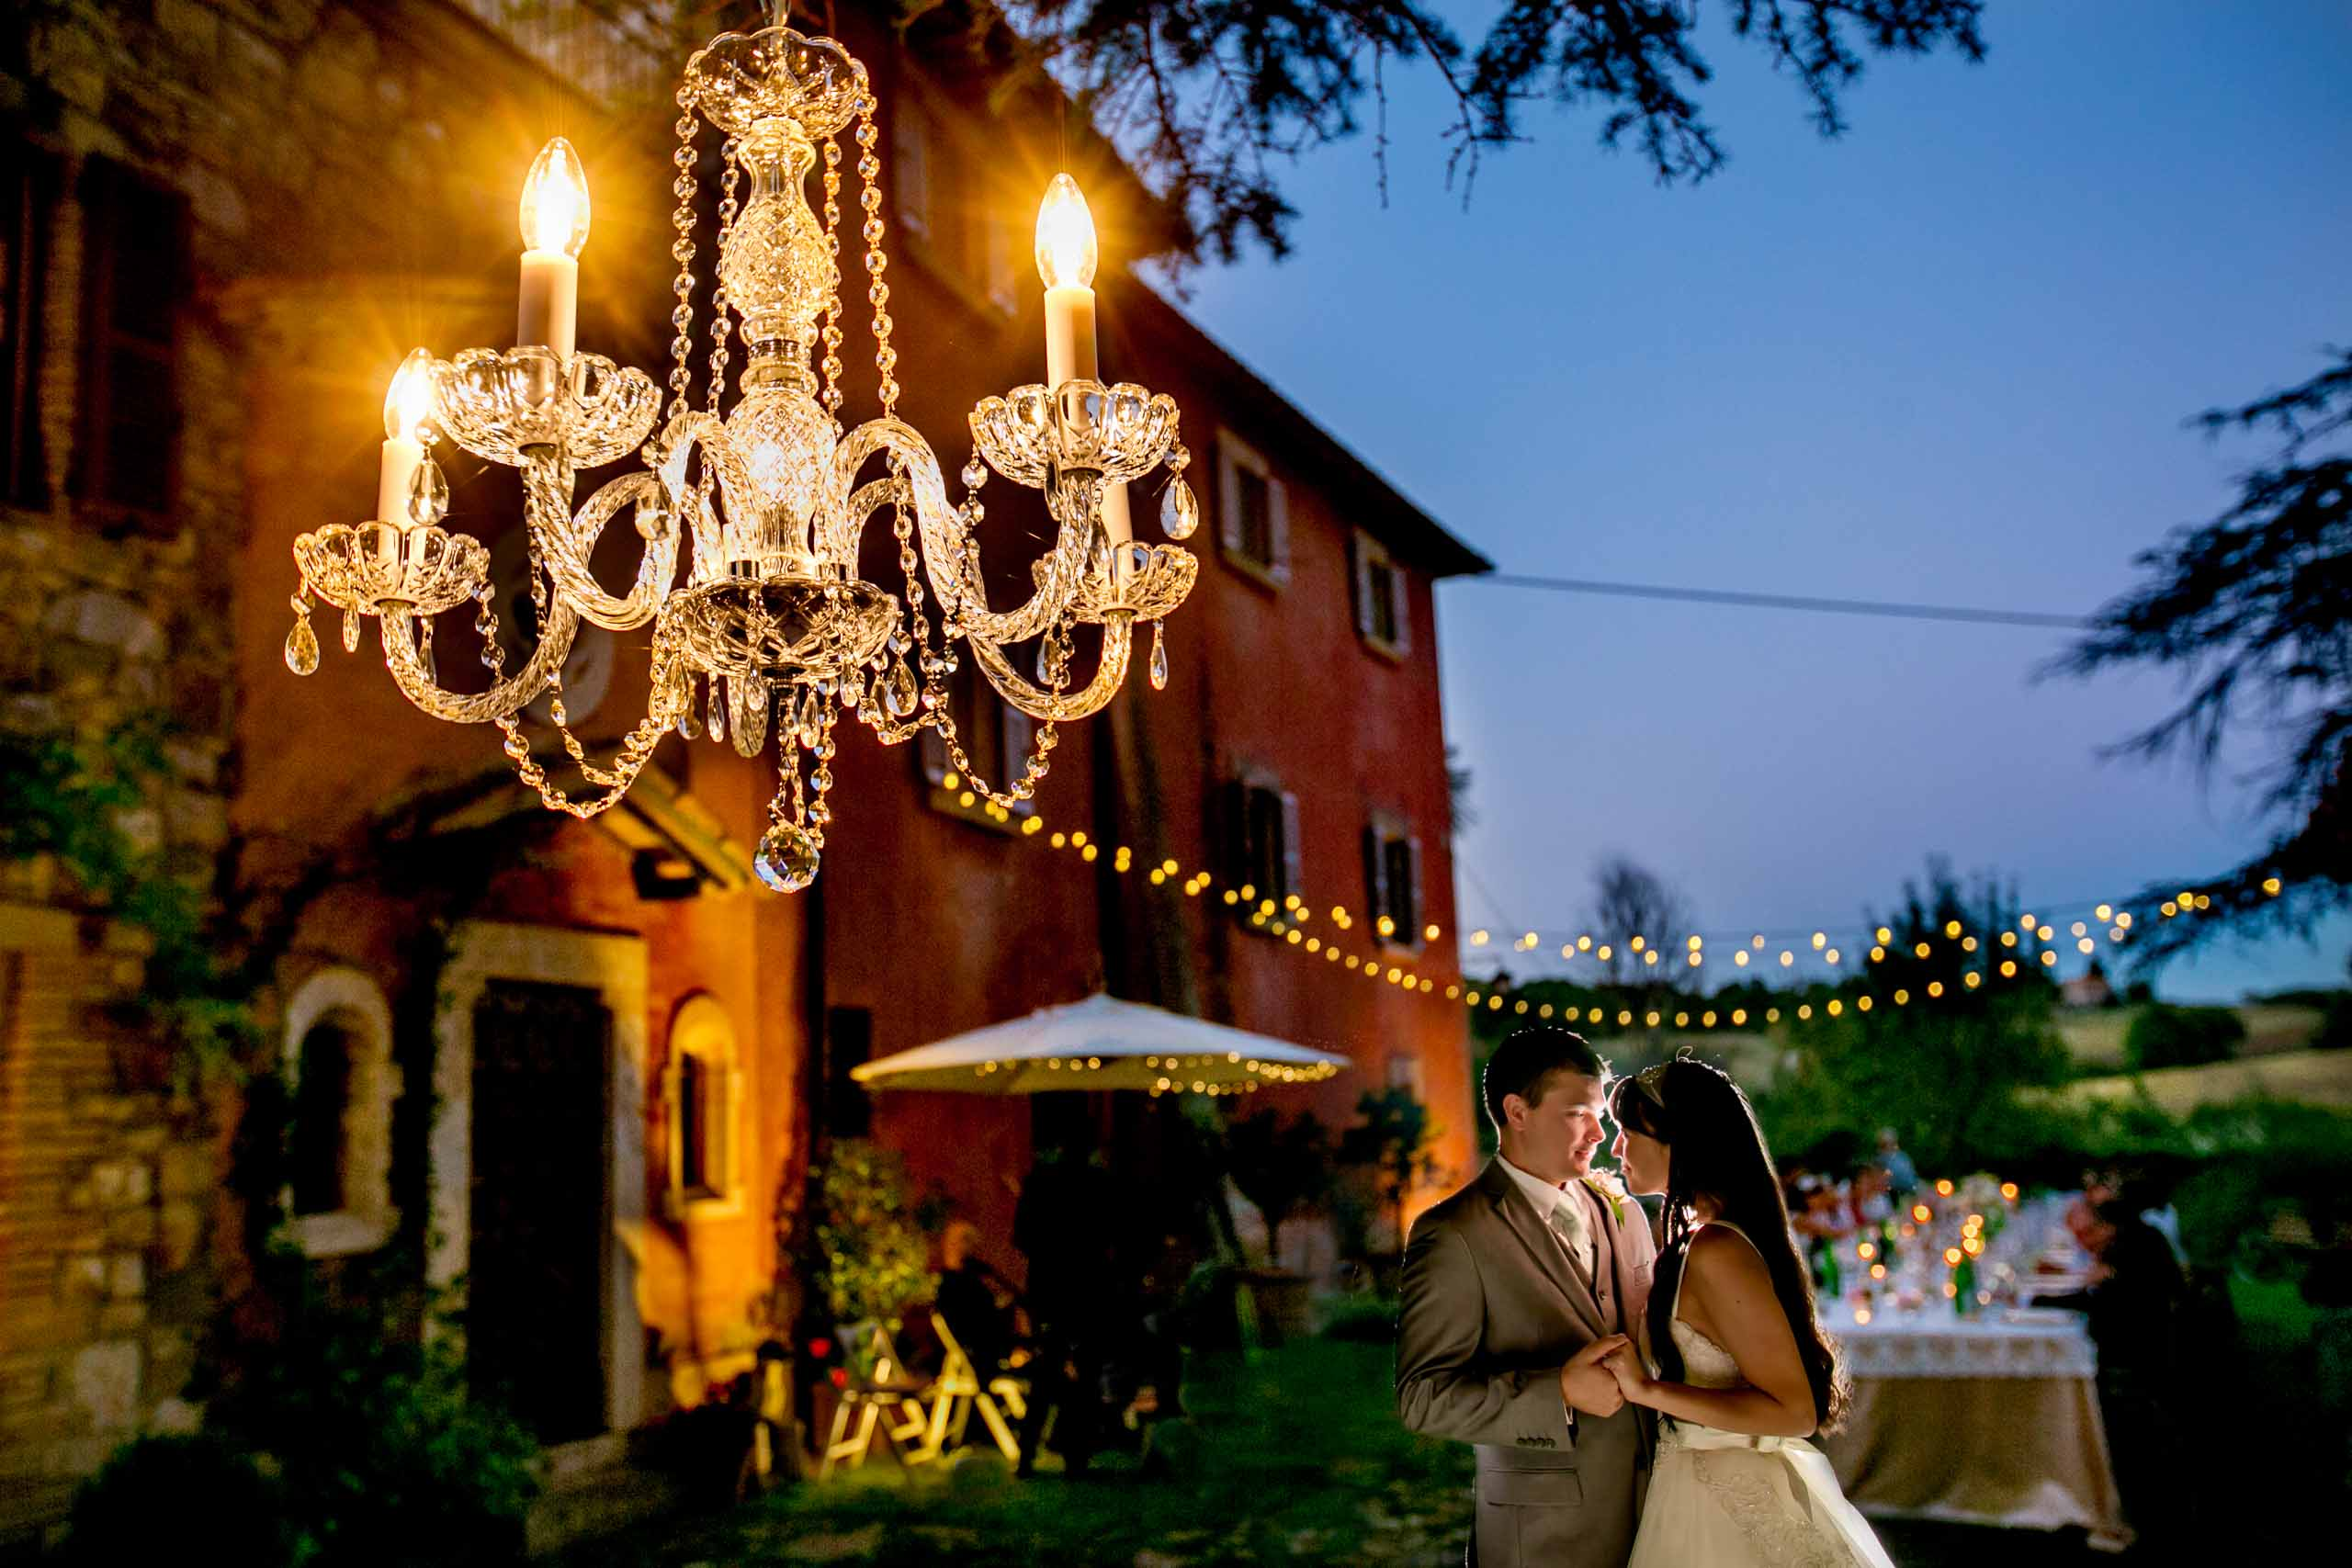 Bride and groom embracing under a chandelier during a Villa Tre Grazie wedding ceremony near Todi, Italy in Umbria.